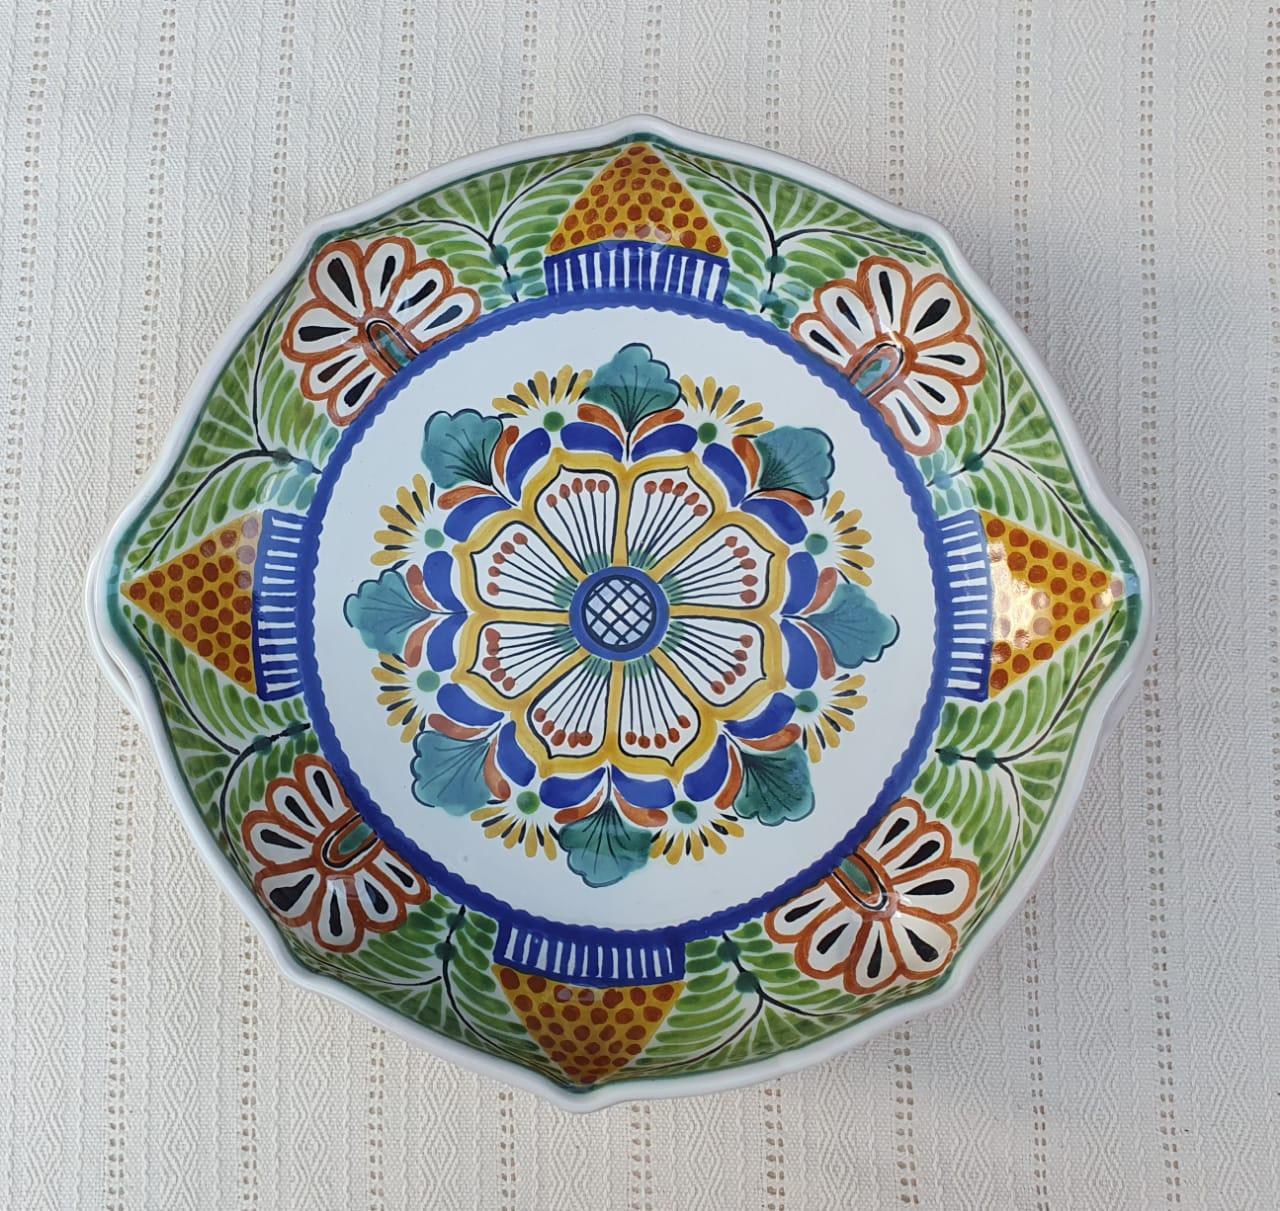 Flower Serving Octagonal Platter 14